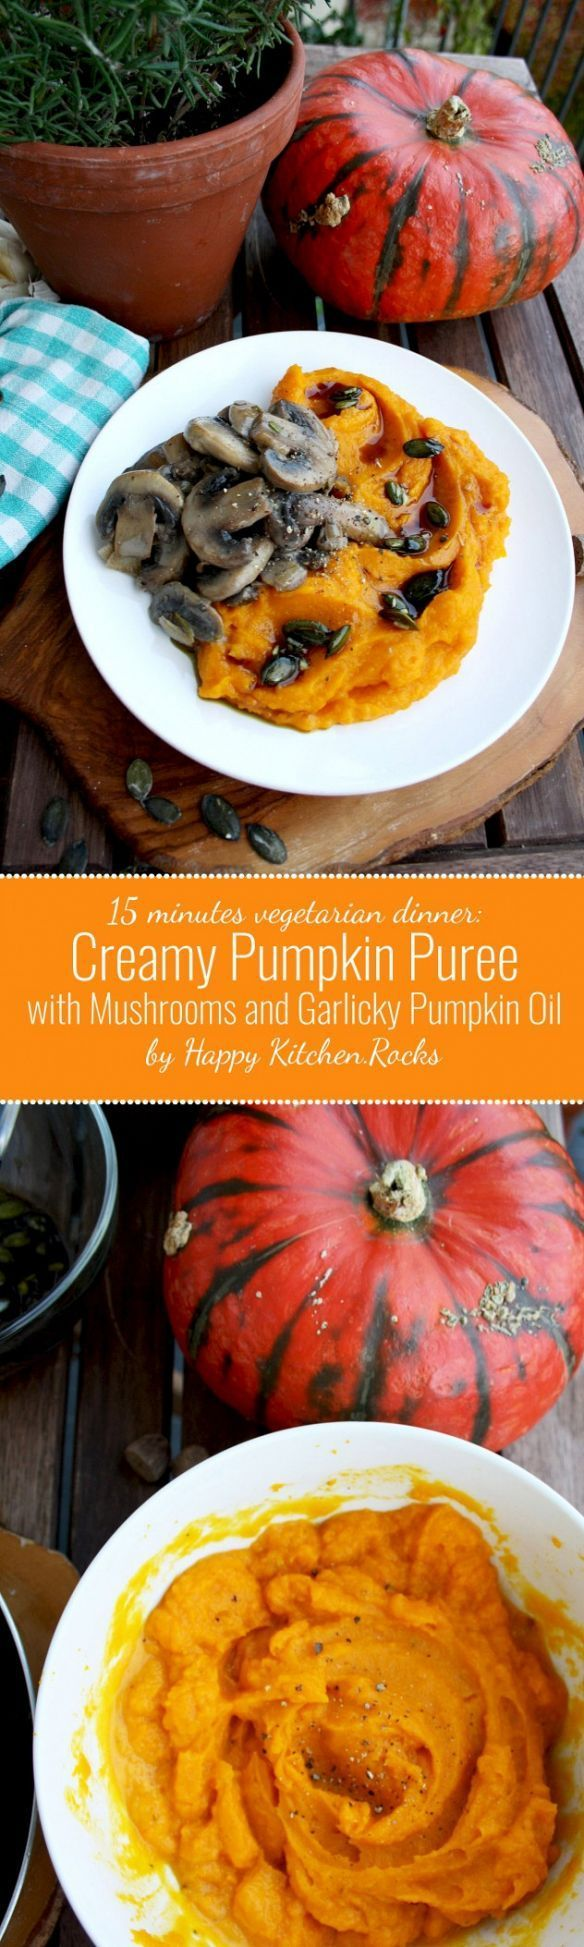 Creamy Pumpkin Puree with Mushrooms and Garlicky Pumpkin Oil: a 15 minutes easy recipe for a seasonal vegetarian dinner, packed with fall flavors. Great side dish for your Thanksgiving table!